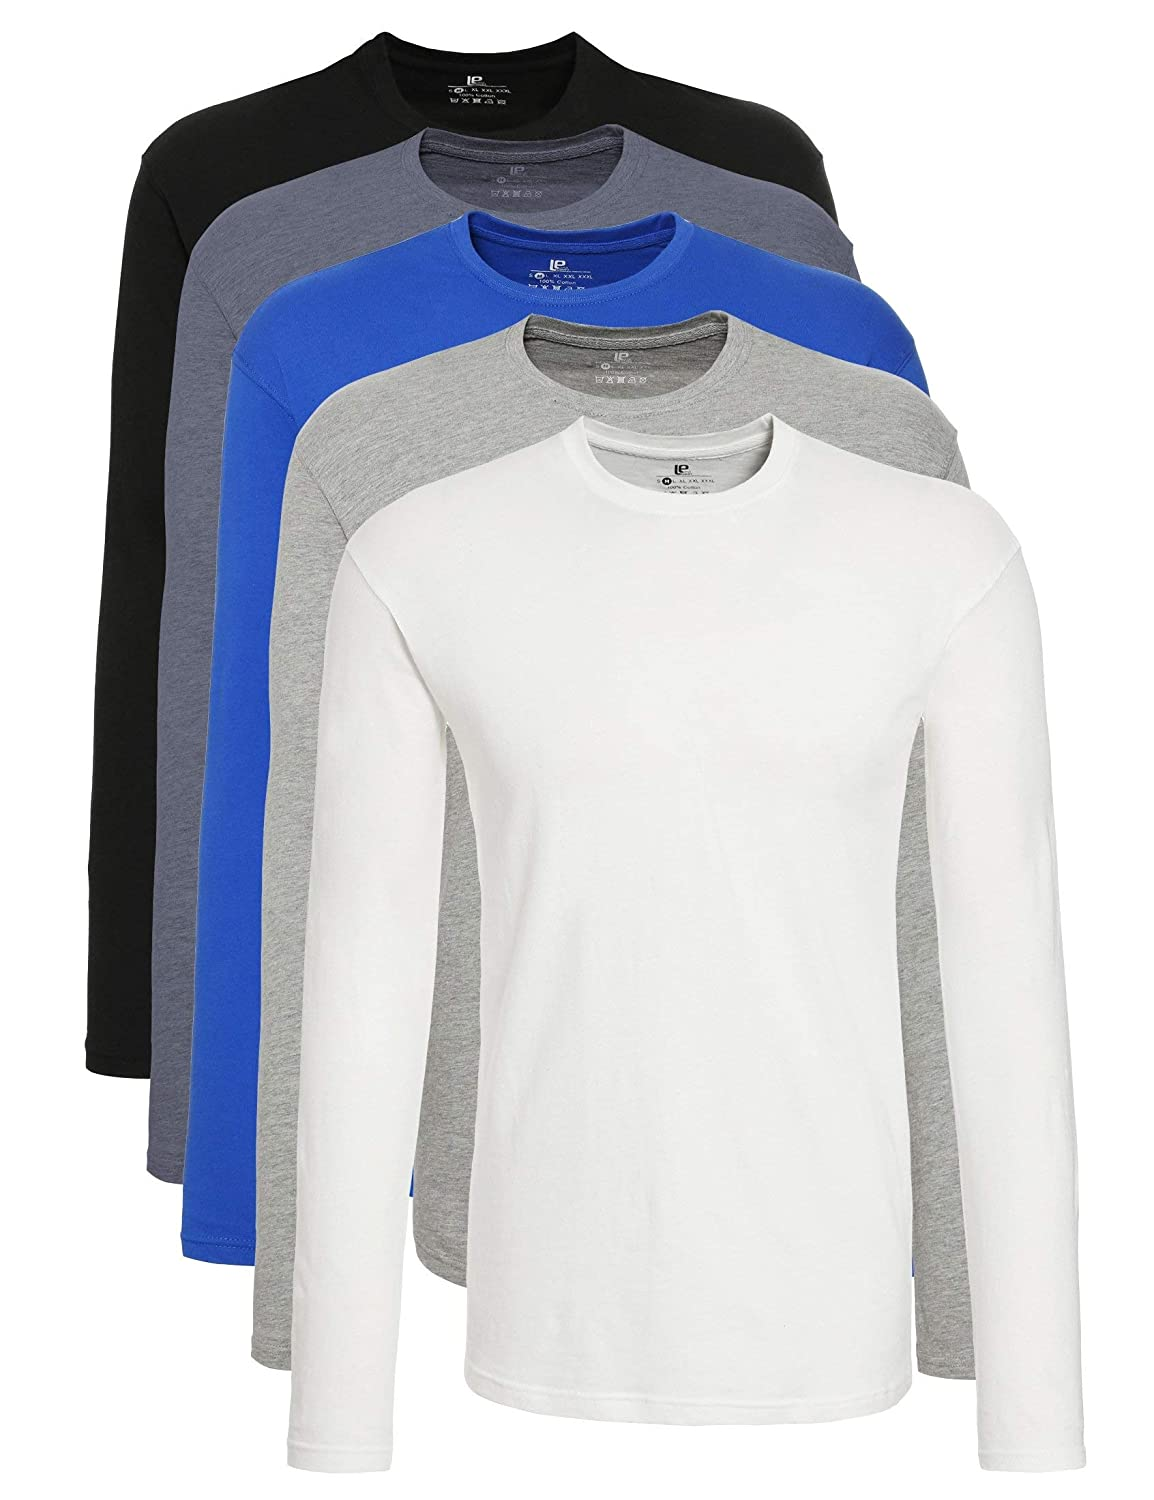 Lower East Men's Round Neck Long Sleeve Top, Pack of 5